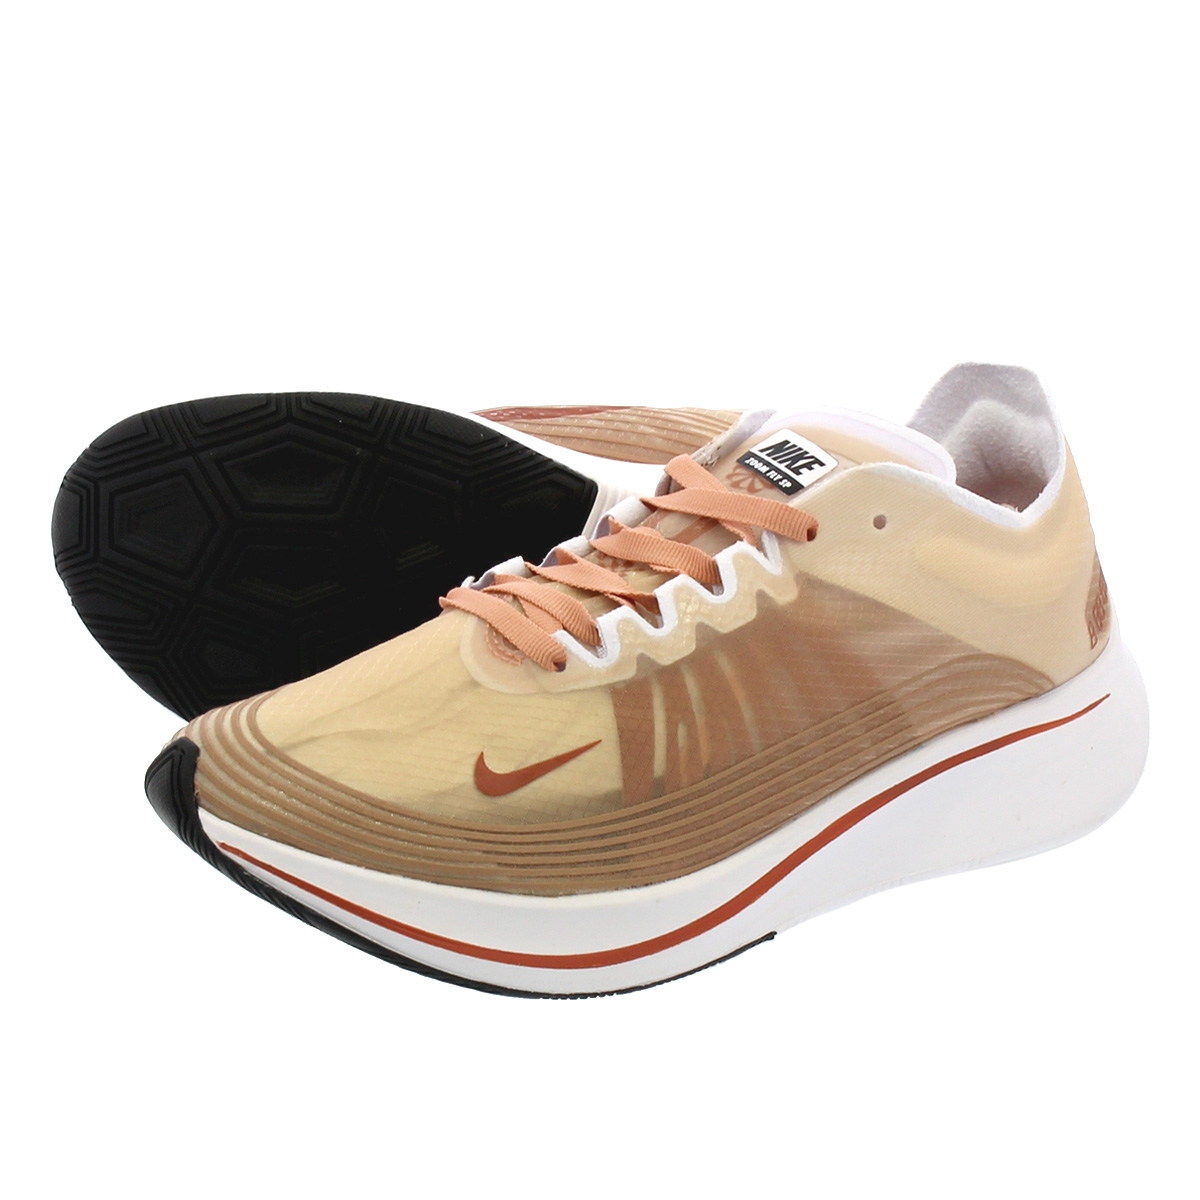 NIKE WMNS ZOOM FLY SP ナイキ ウィメンズ ズーム フライ SP DUSTY PEACH/GUAVA ICE/DUSTY PEACH aj8229-200